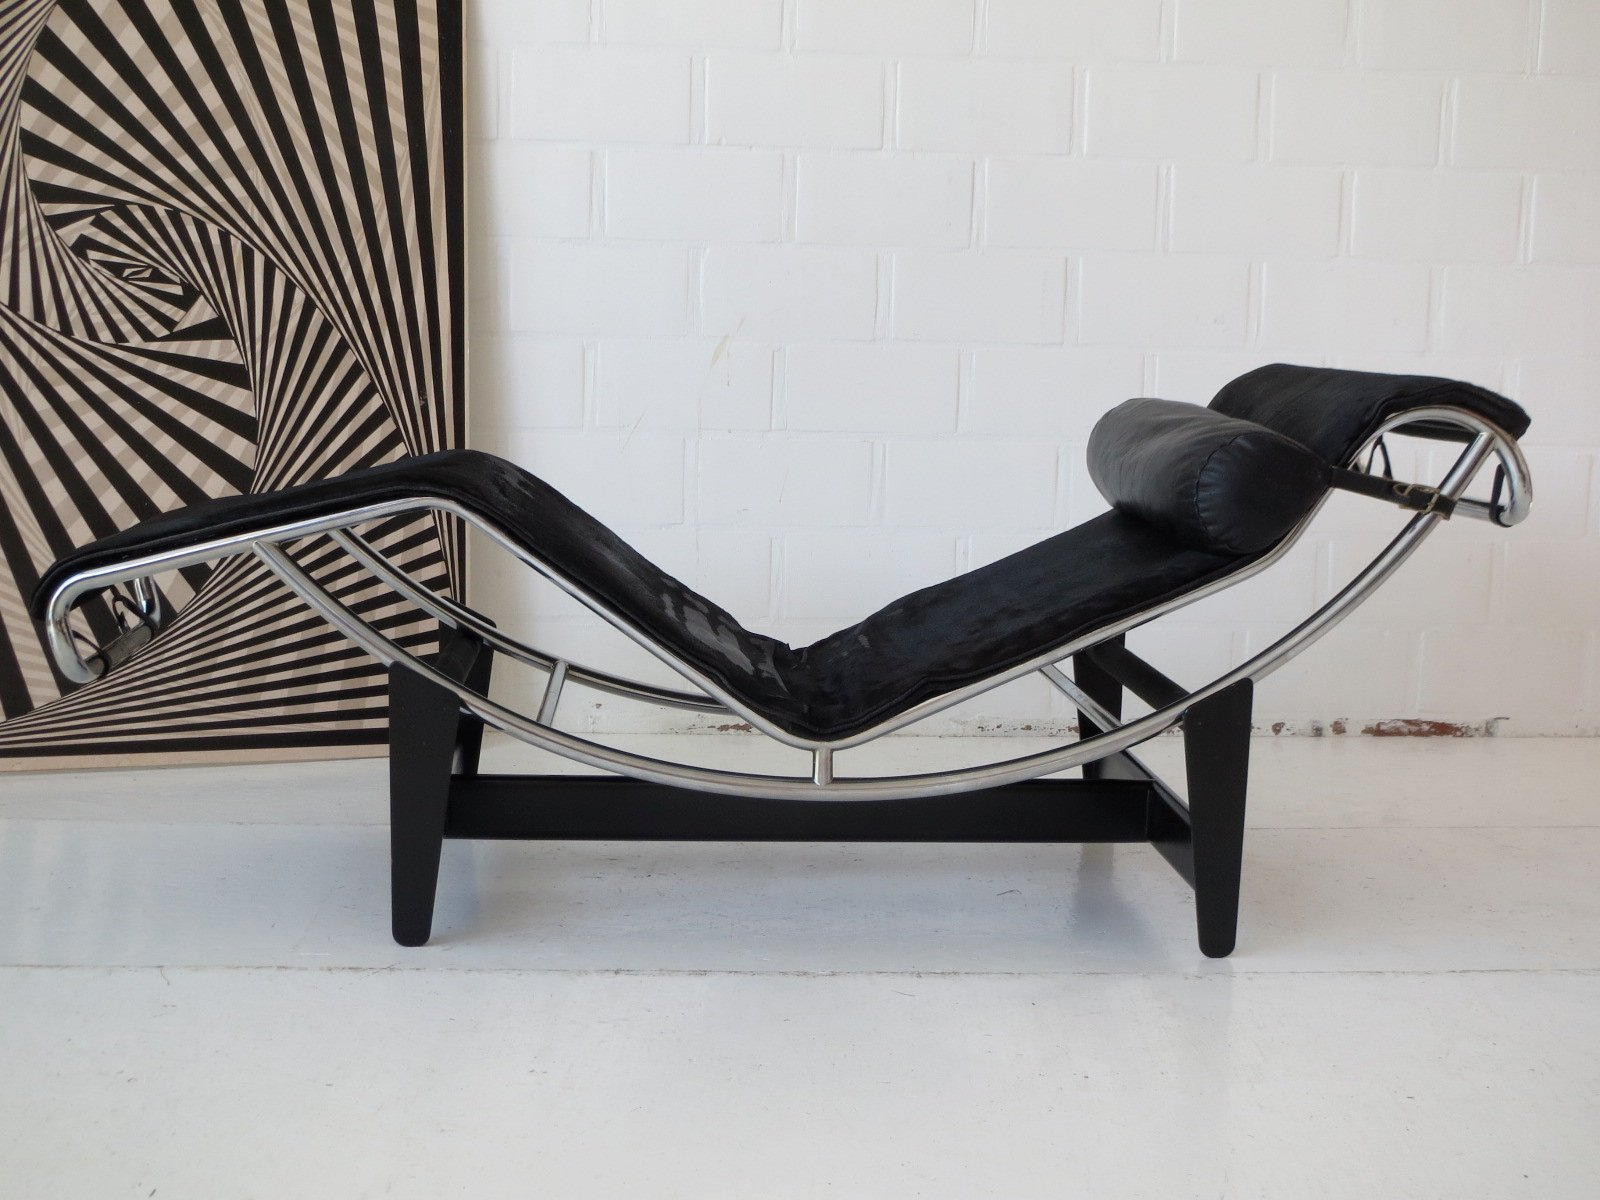 Early lc4 chaise longue by le corbusier charlotte for Chaise longue le corbusier cassina